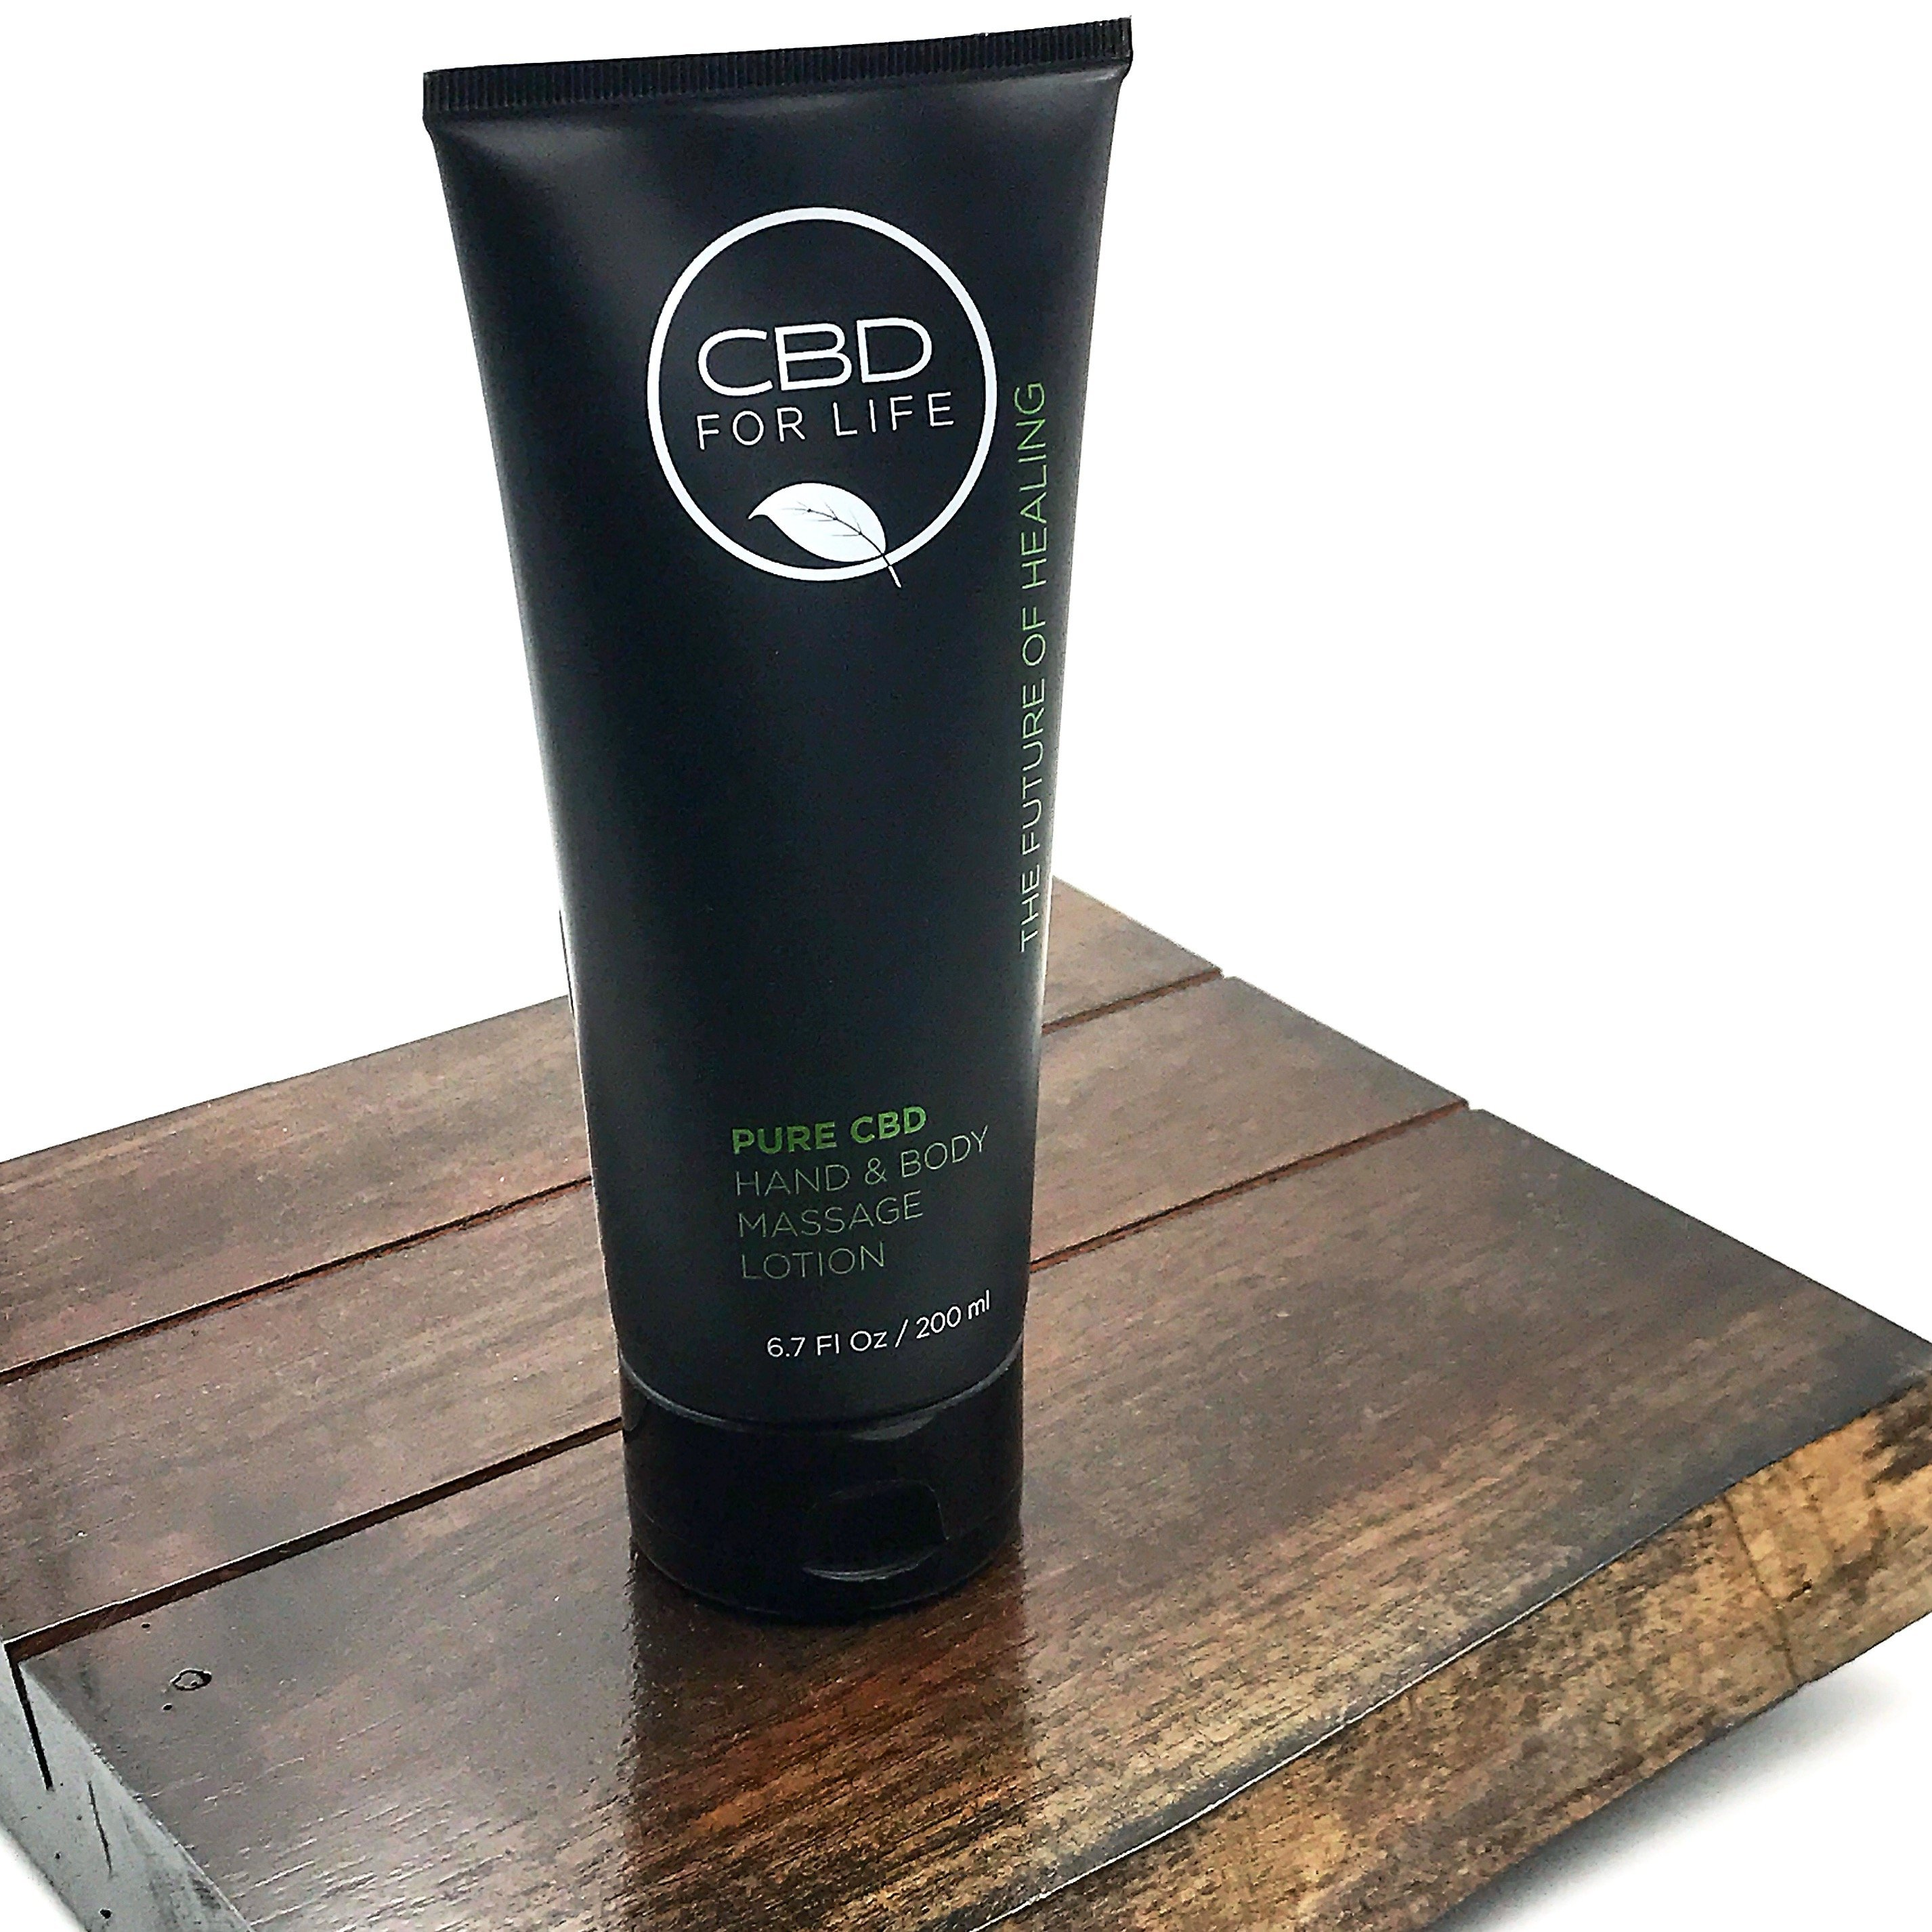 CBD for Life - Hand and Body Lotion